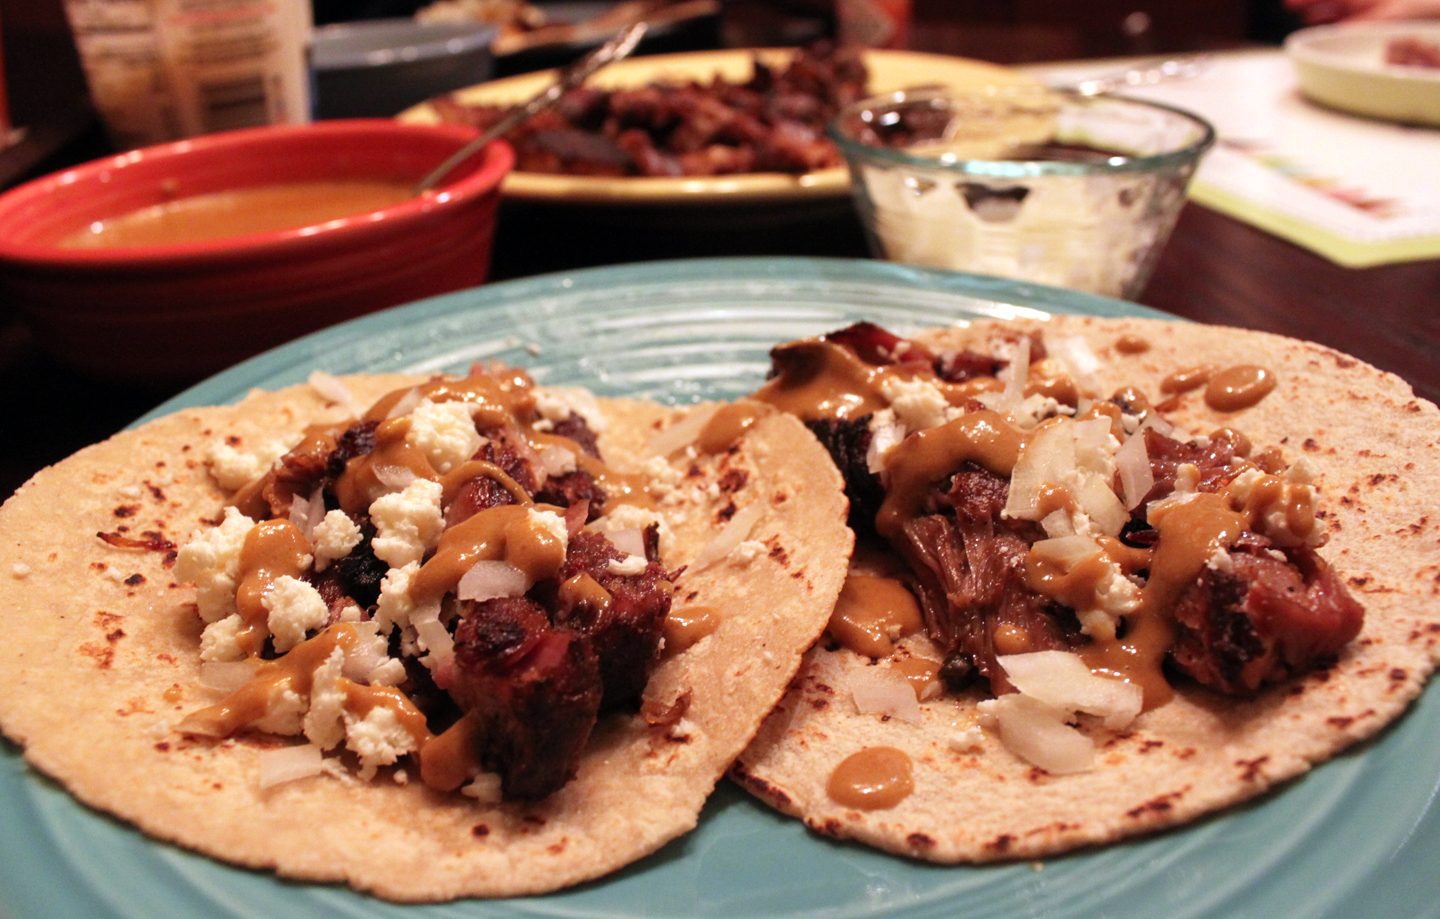 Delicious Crock Pot pork carnitas from the popular Crock Pot Thursday ...